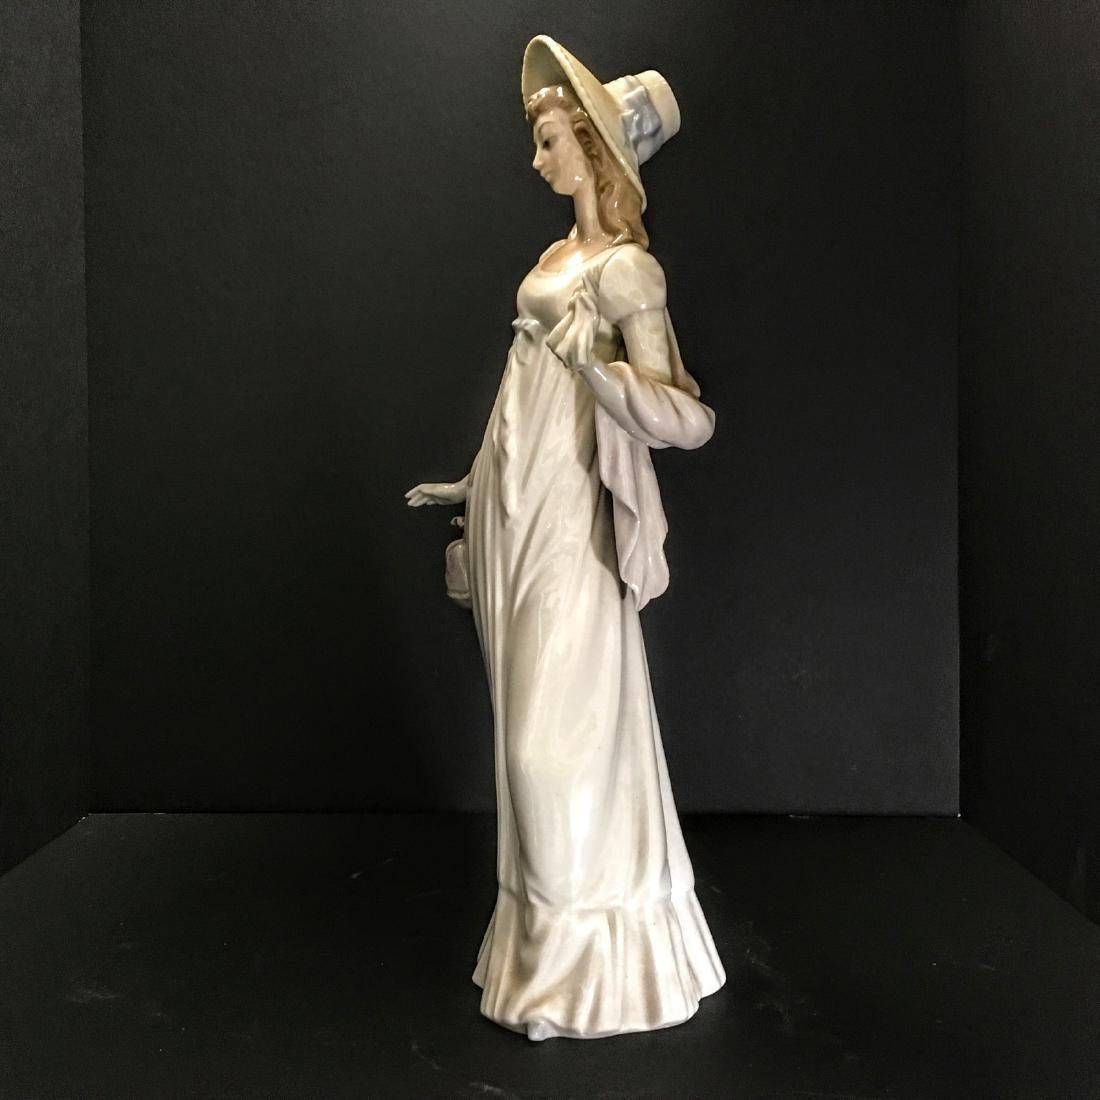 Lladro Figurine - Girl with hat and purse. - 3